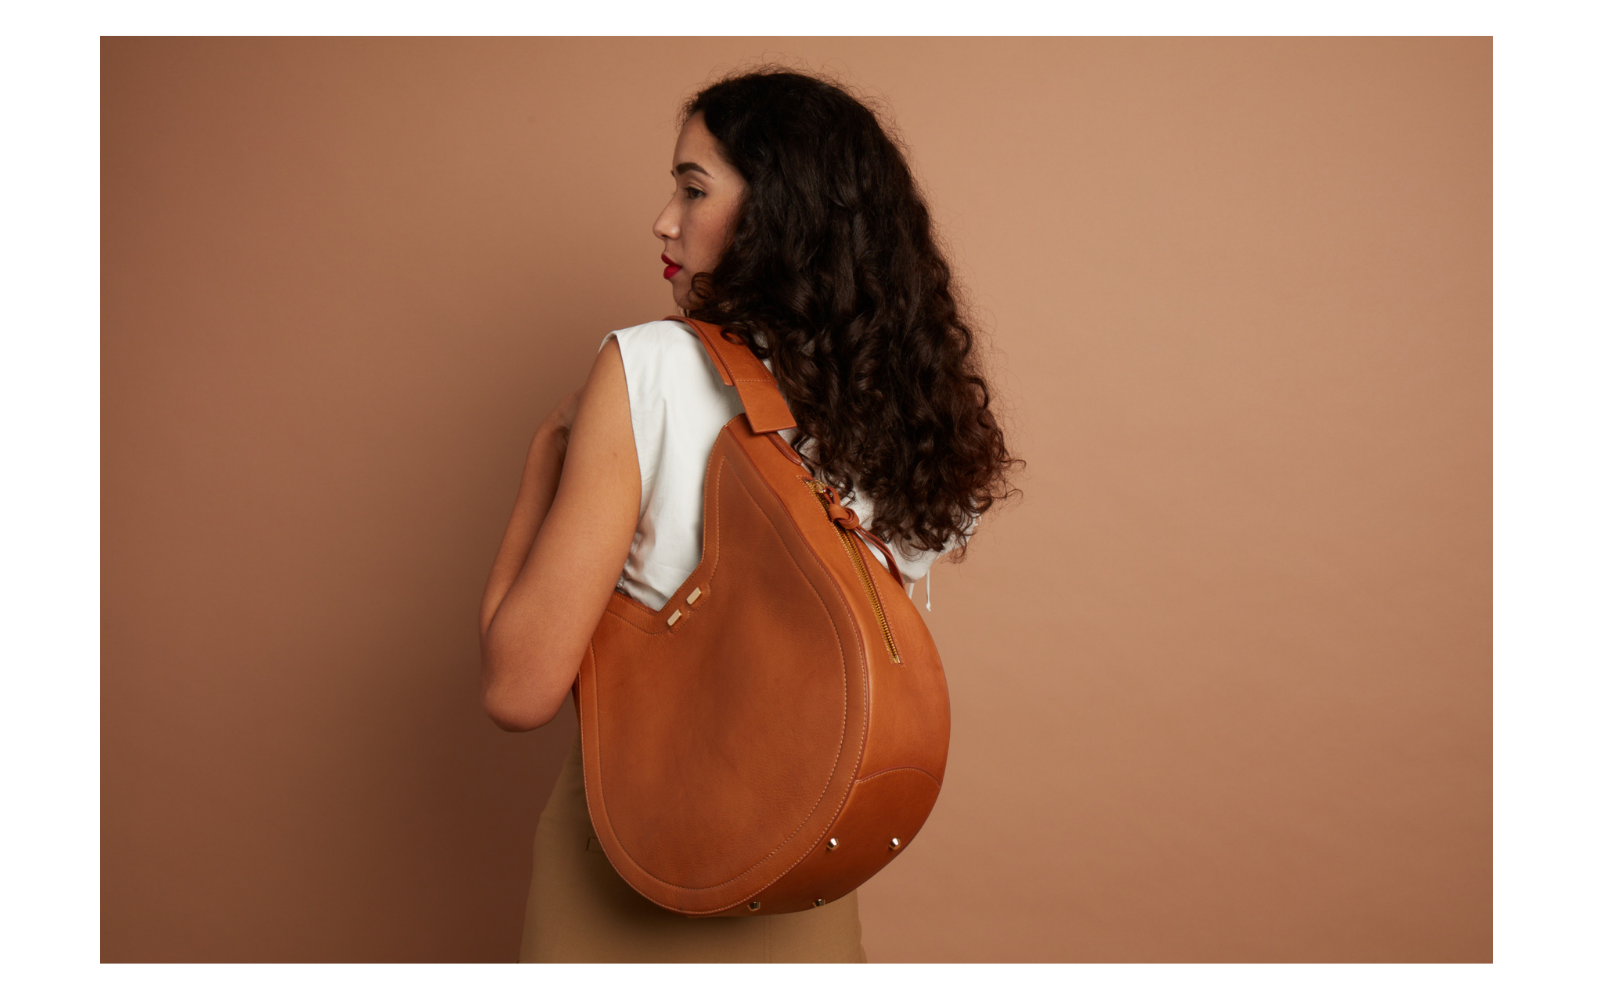 The Henry James Hobo is the chicest bag in town. This unique shape will fit all your everyday essentials. The swivel strap is made for ease and comfort and the side zipper is a secret pocket for easy access. There is a back pocket to slip your credit card